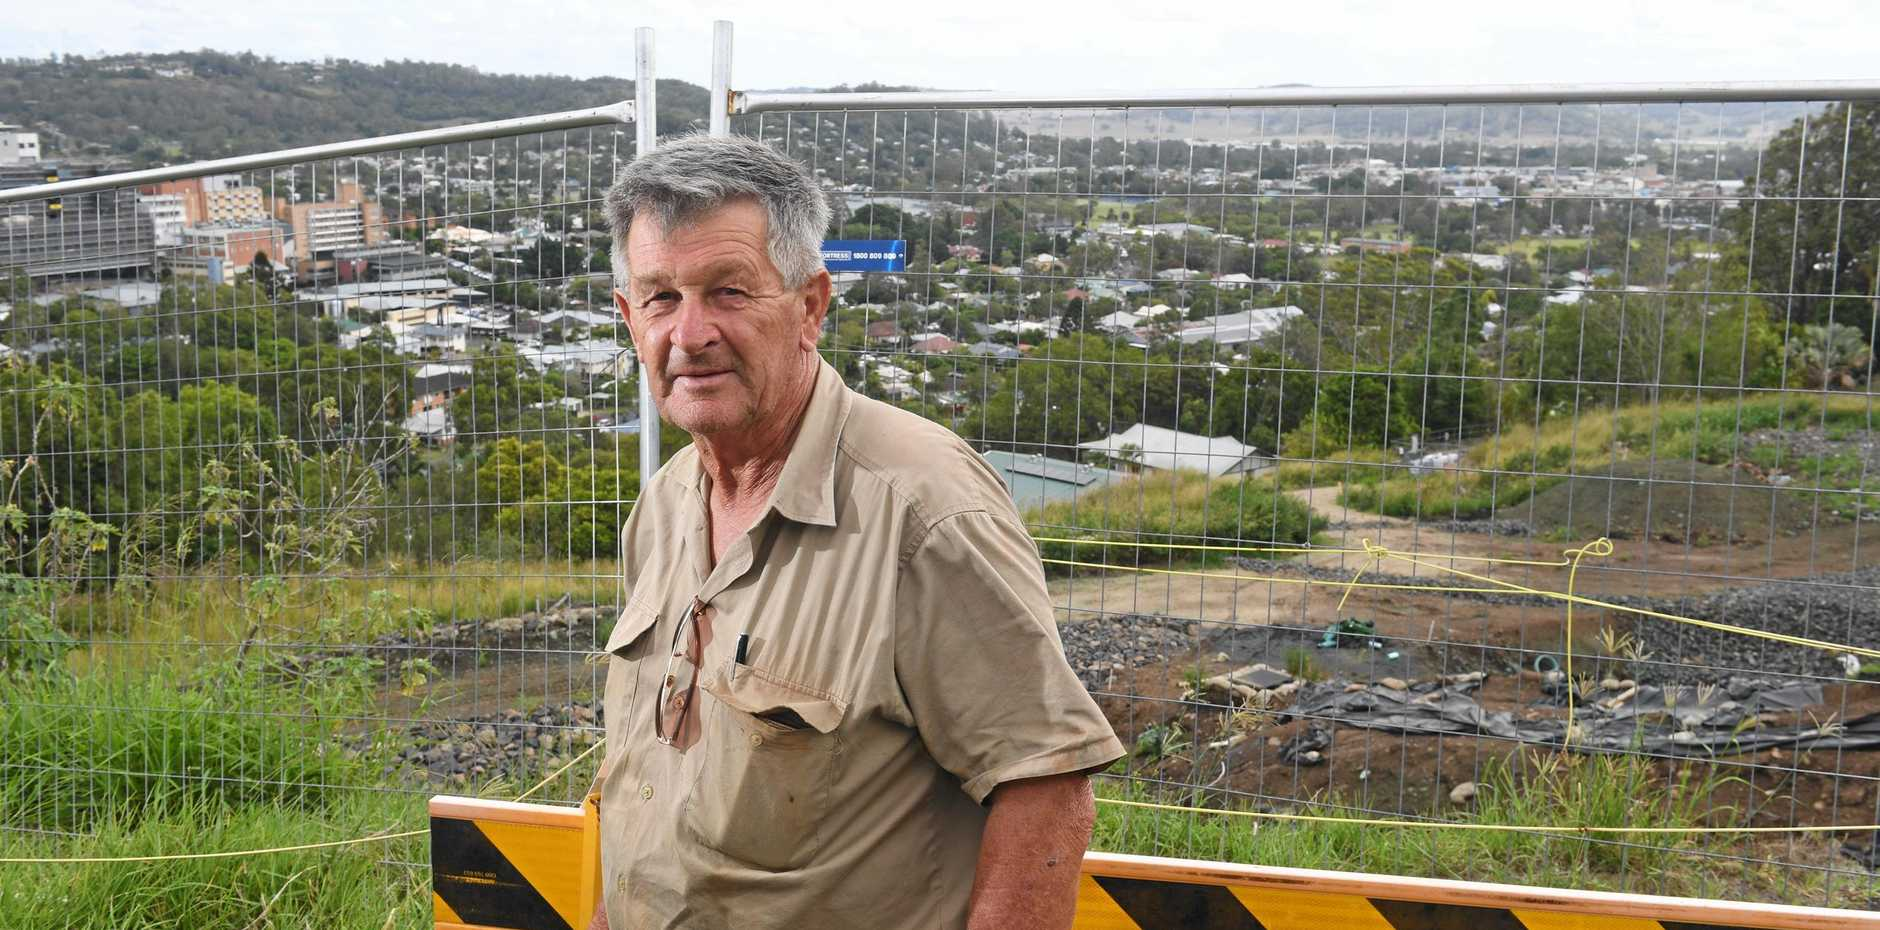 Landowner Ken Allport is expected to speak in the public access session at the April 9 Council meeting regarding the landslip and reformation of the embankment along Beardow St, Lismore Heights, where historic industrial waste including coke and slag like materials, as well as bonded asbestos, was encountered.